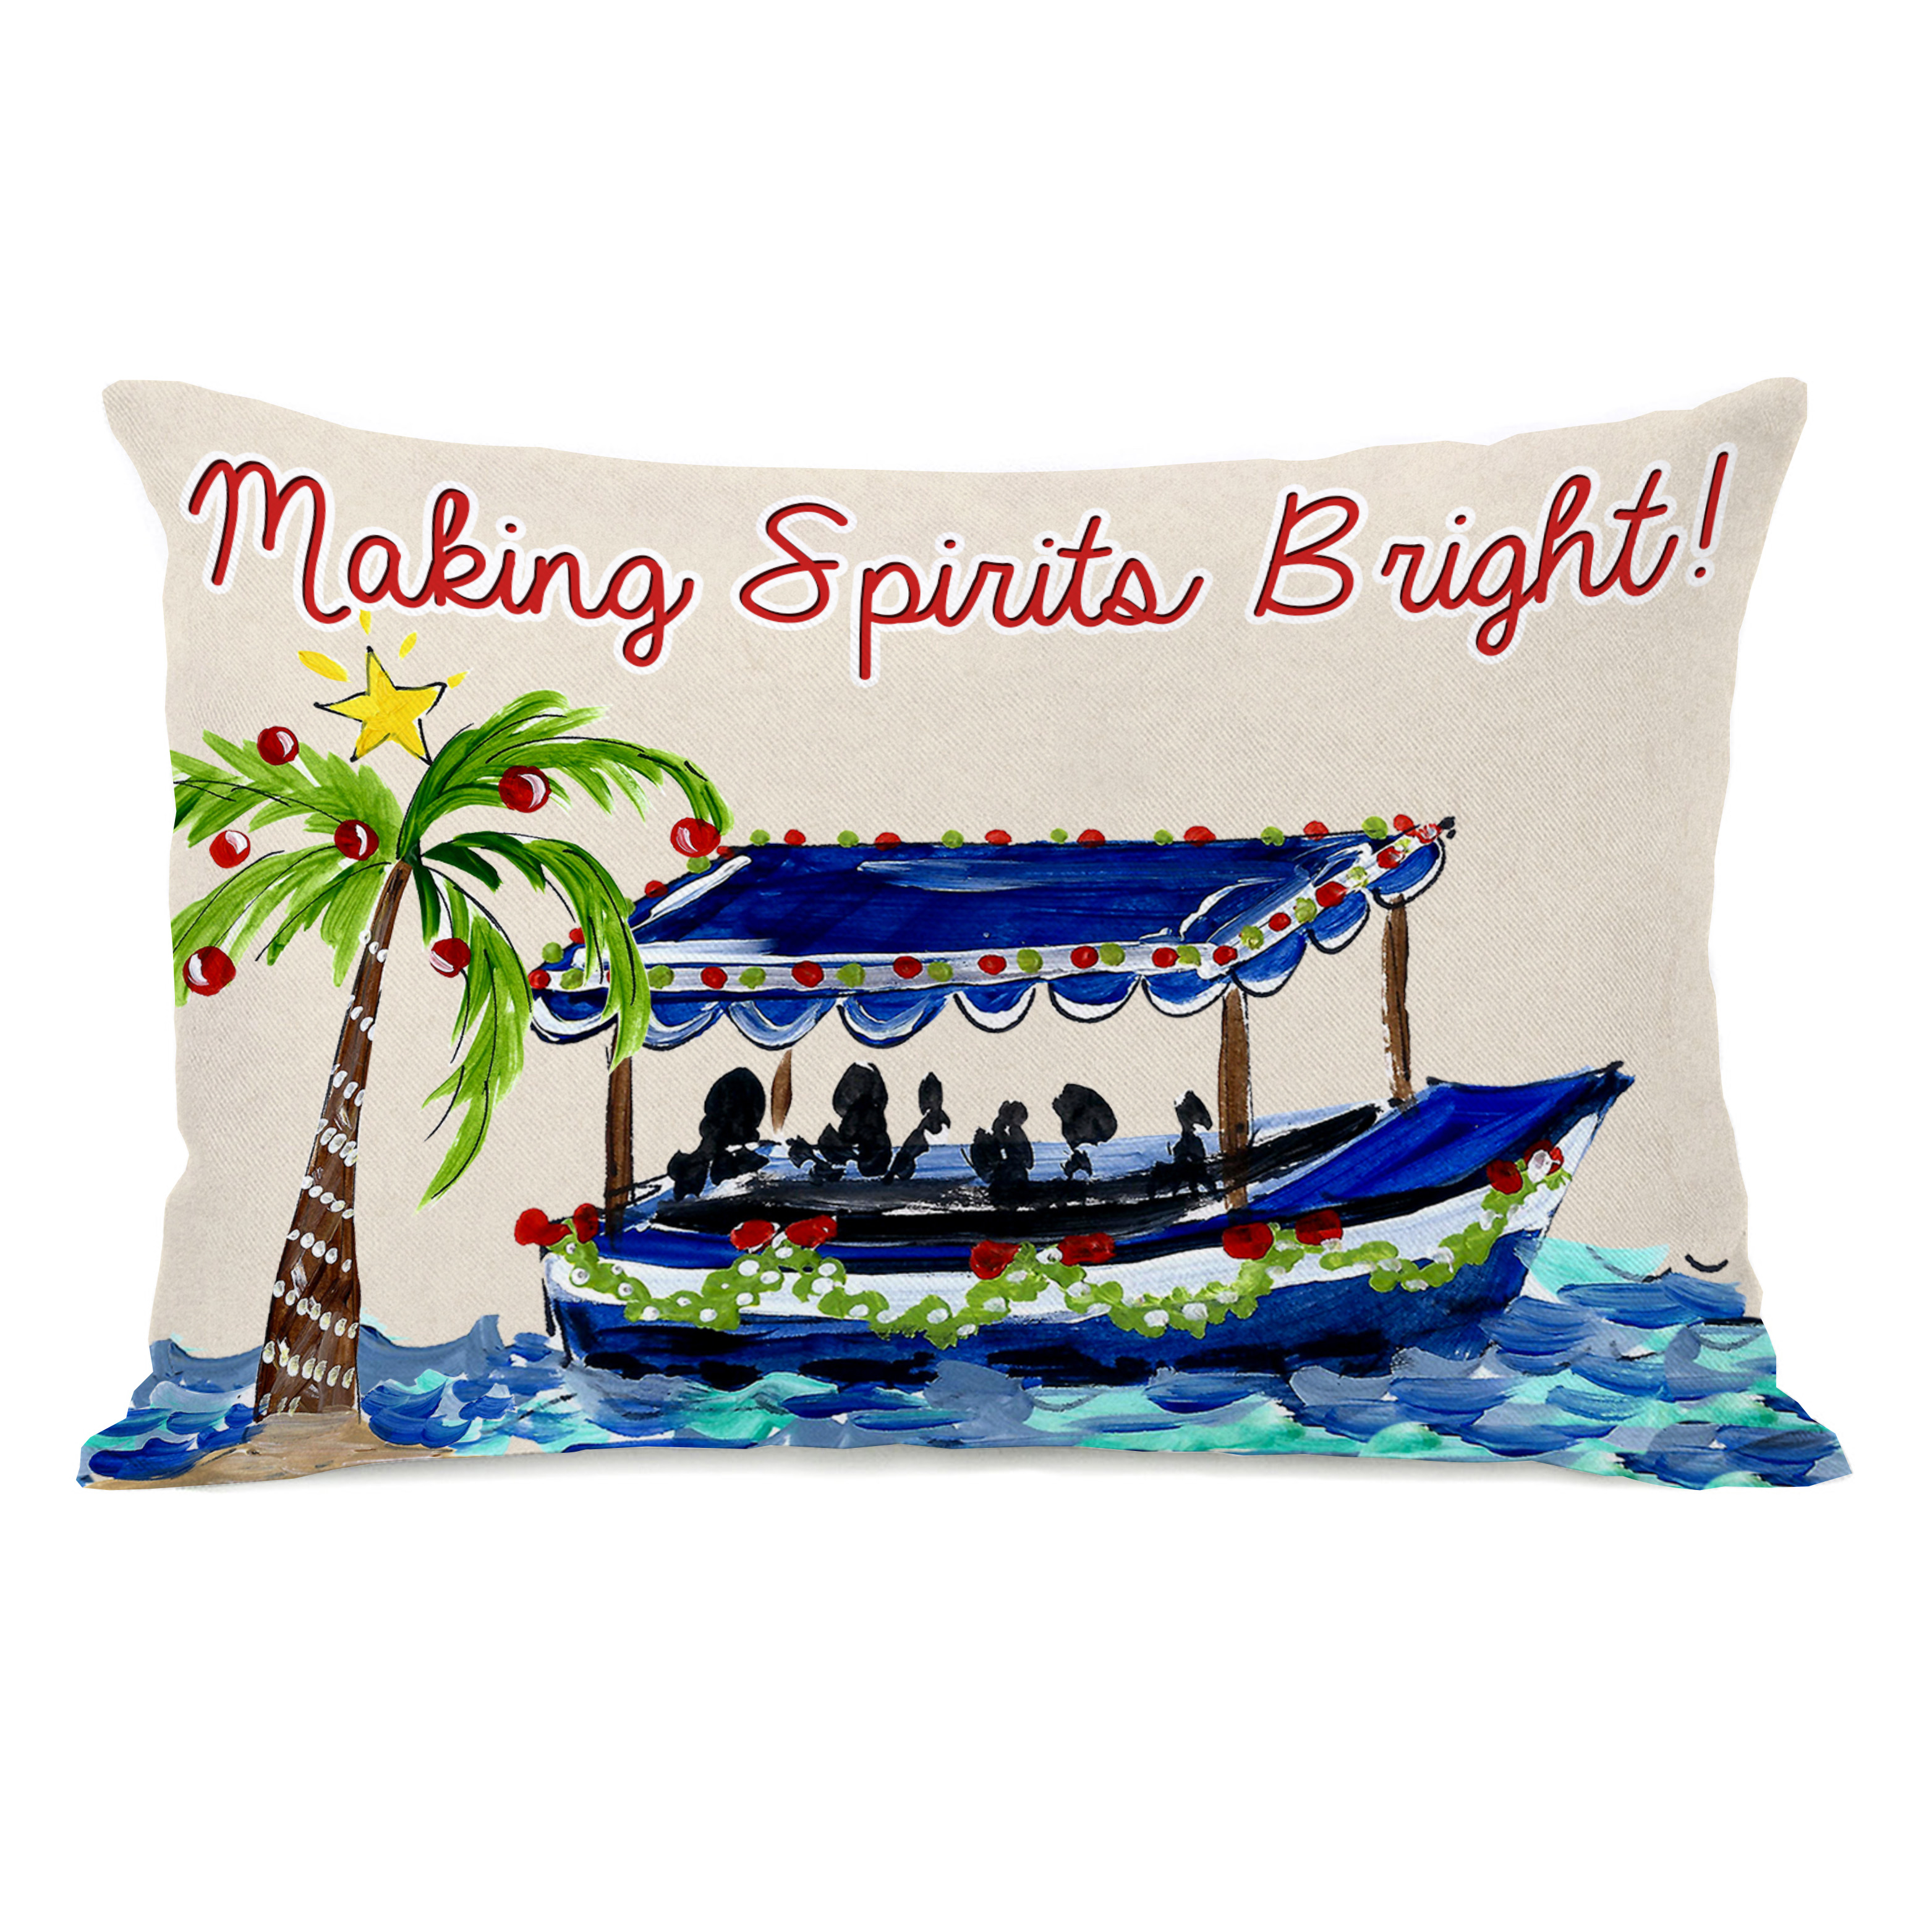 Making Spirits Bright - Tan Multi 14x20 Pillow by Timree